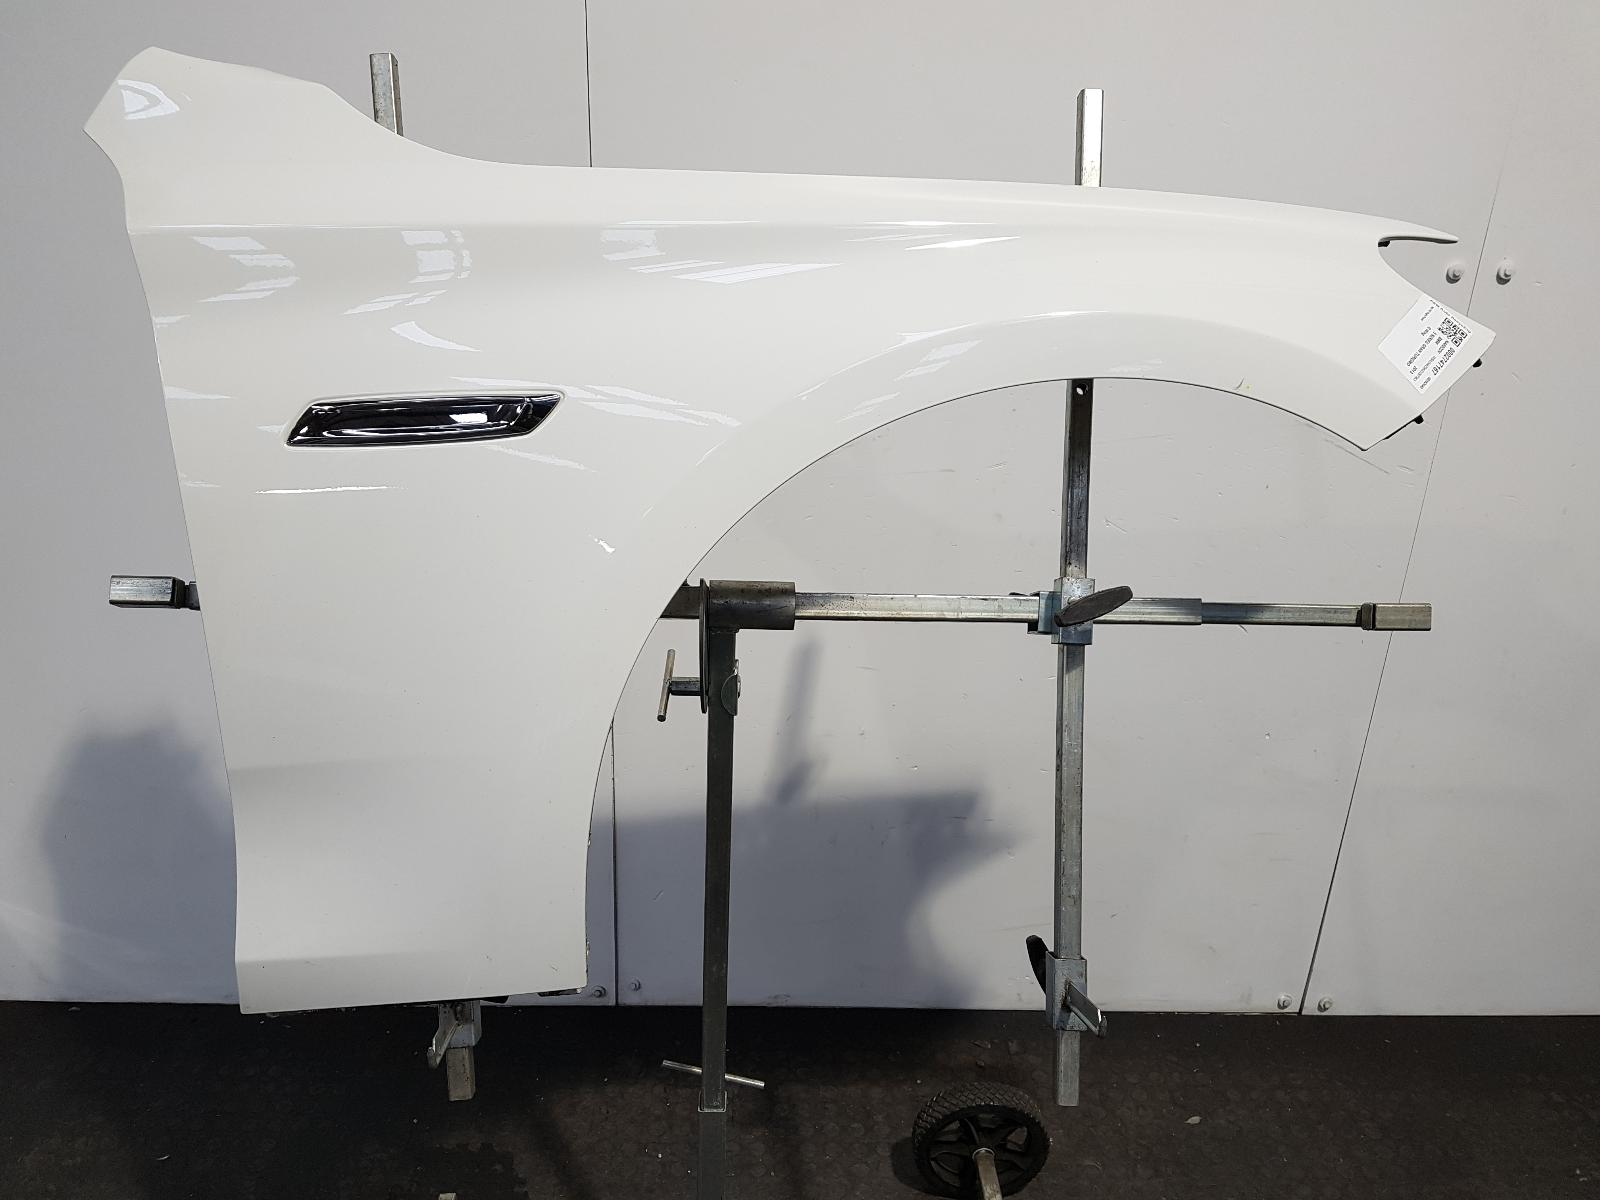 View Auto part R Wing Bmw 5 Series Gran Turismo (gt) 2013